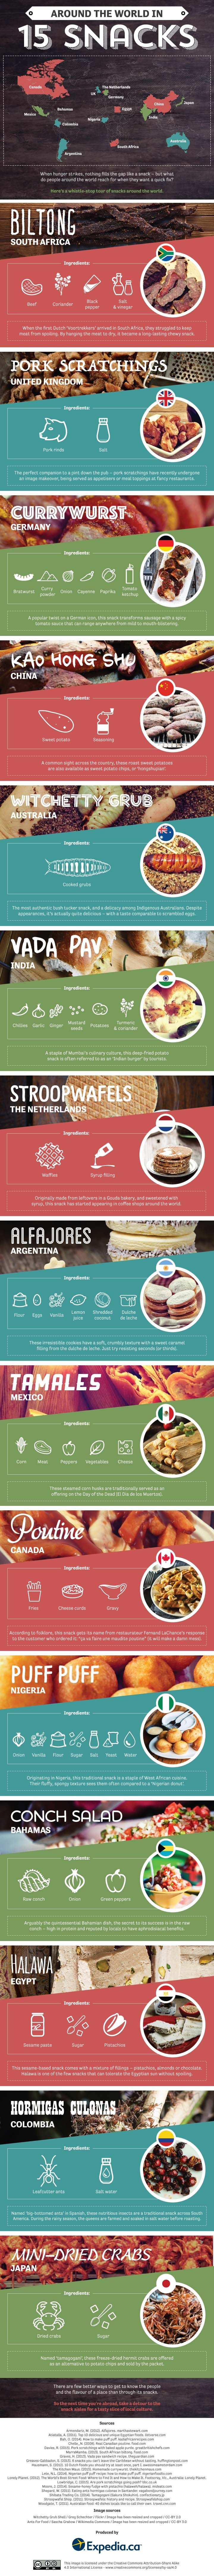 This infographic gives you 15 snacks from around the world. If you've ever wondered what different countries snack on, you can try these foods for yourself!